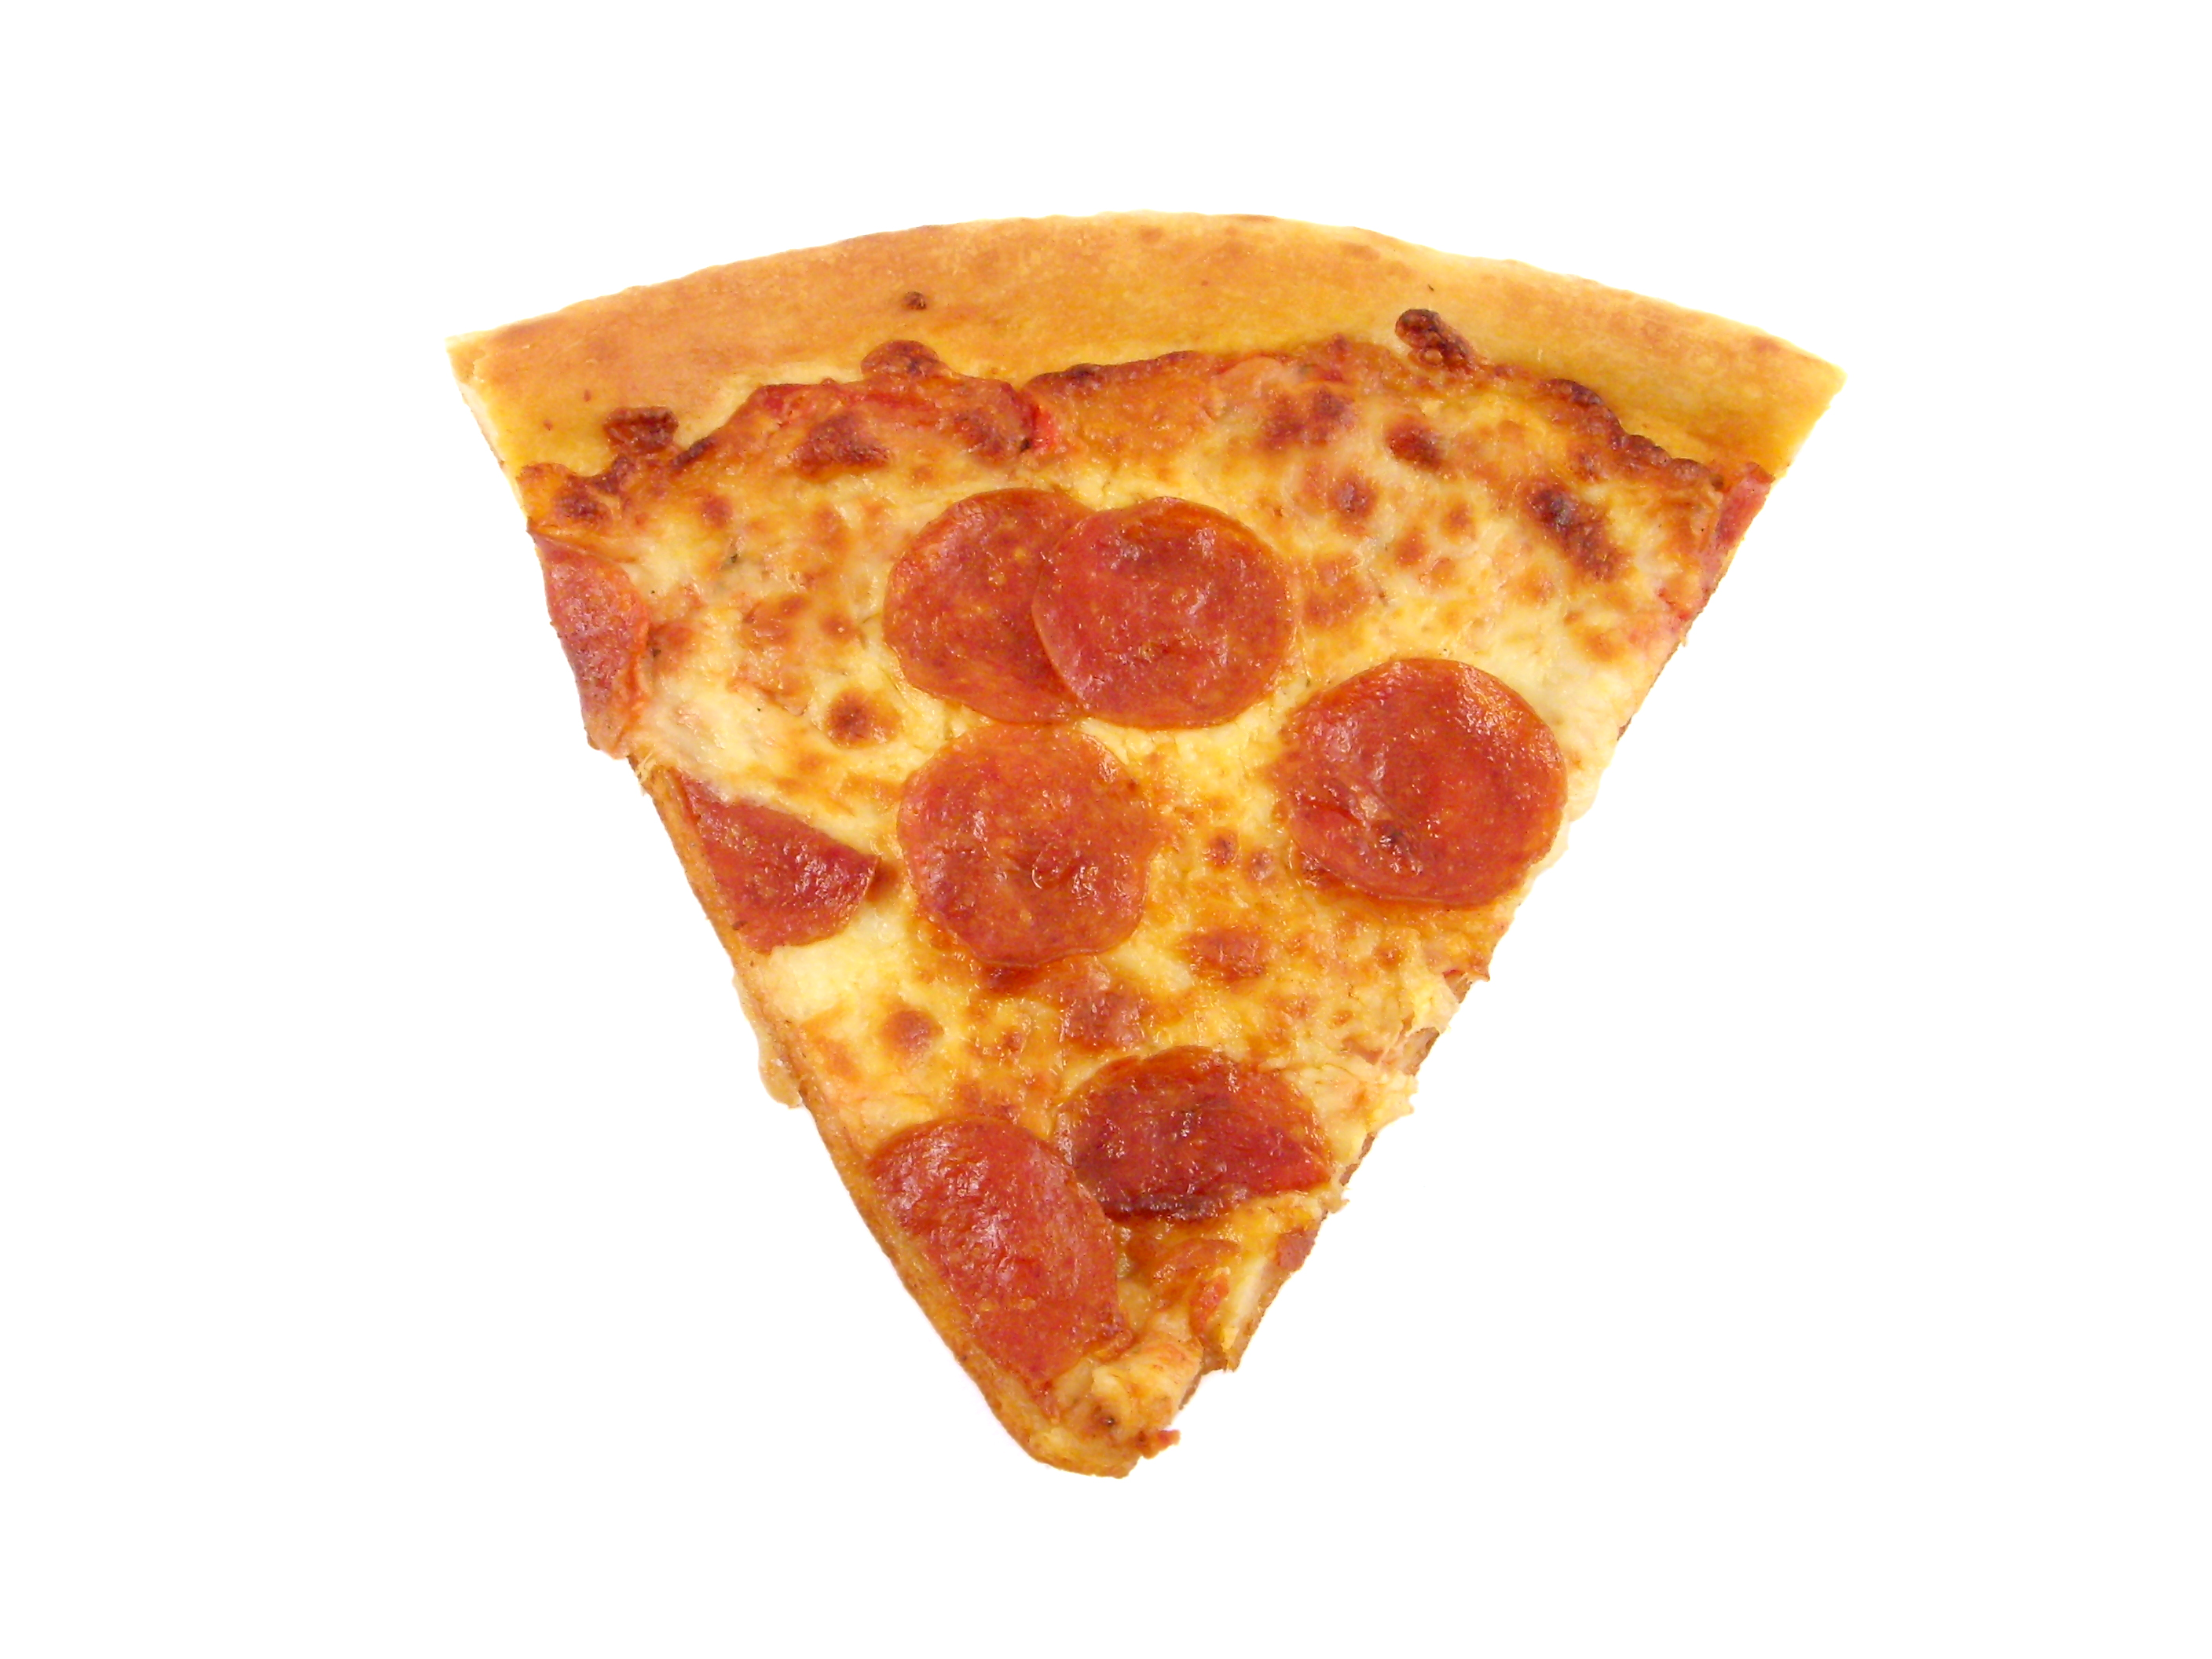 Free Png Pizza Slice - Cheese Pizza Pizza Slice Free Images At Vector Clip Art, Transparent background PNG HD thumbnail